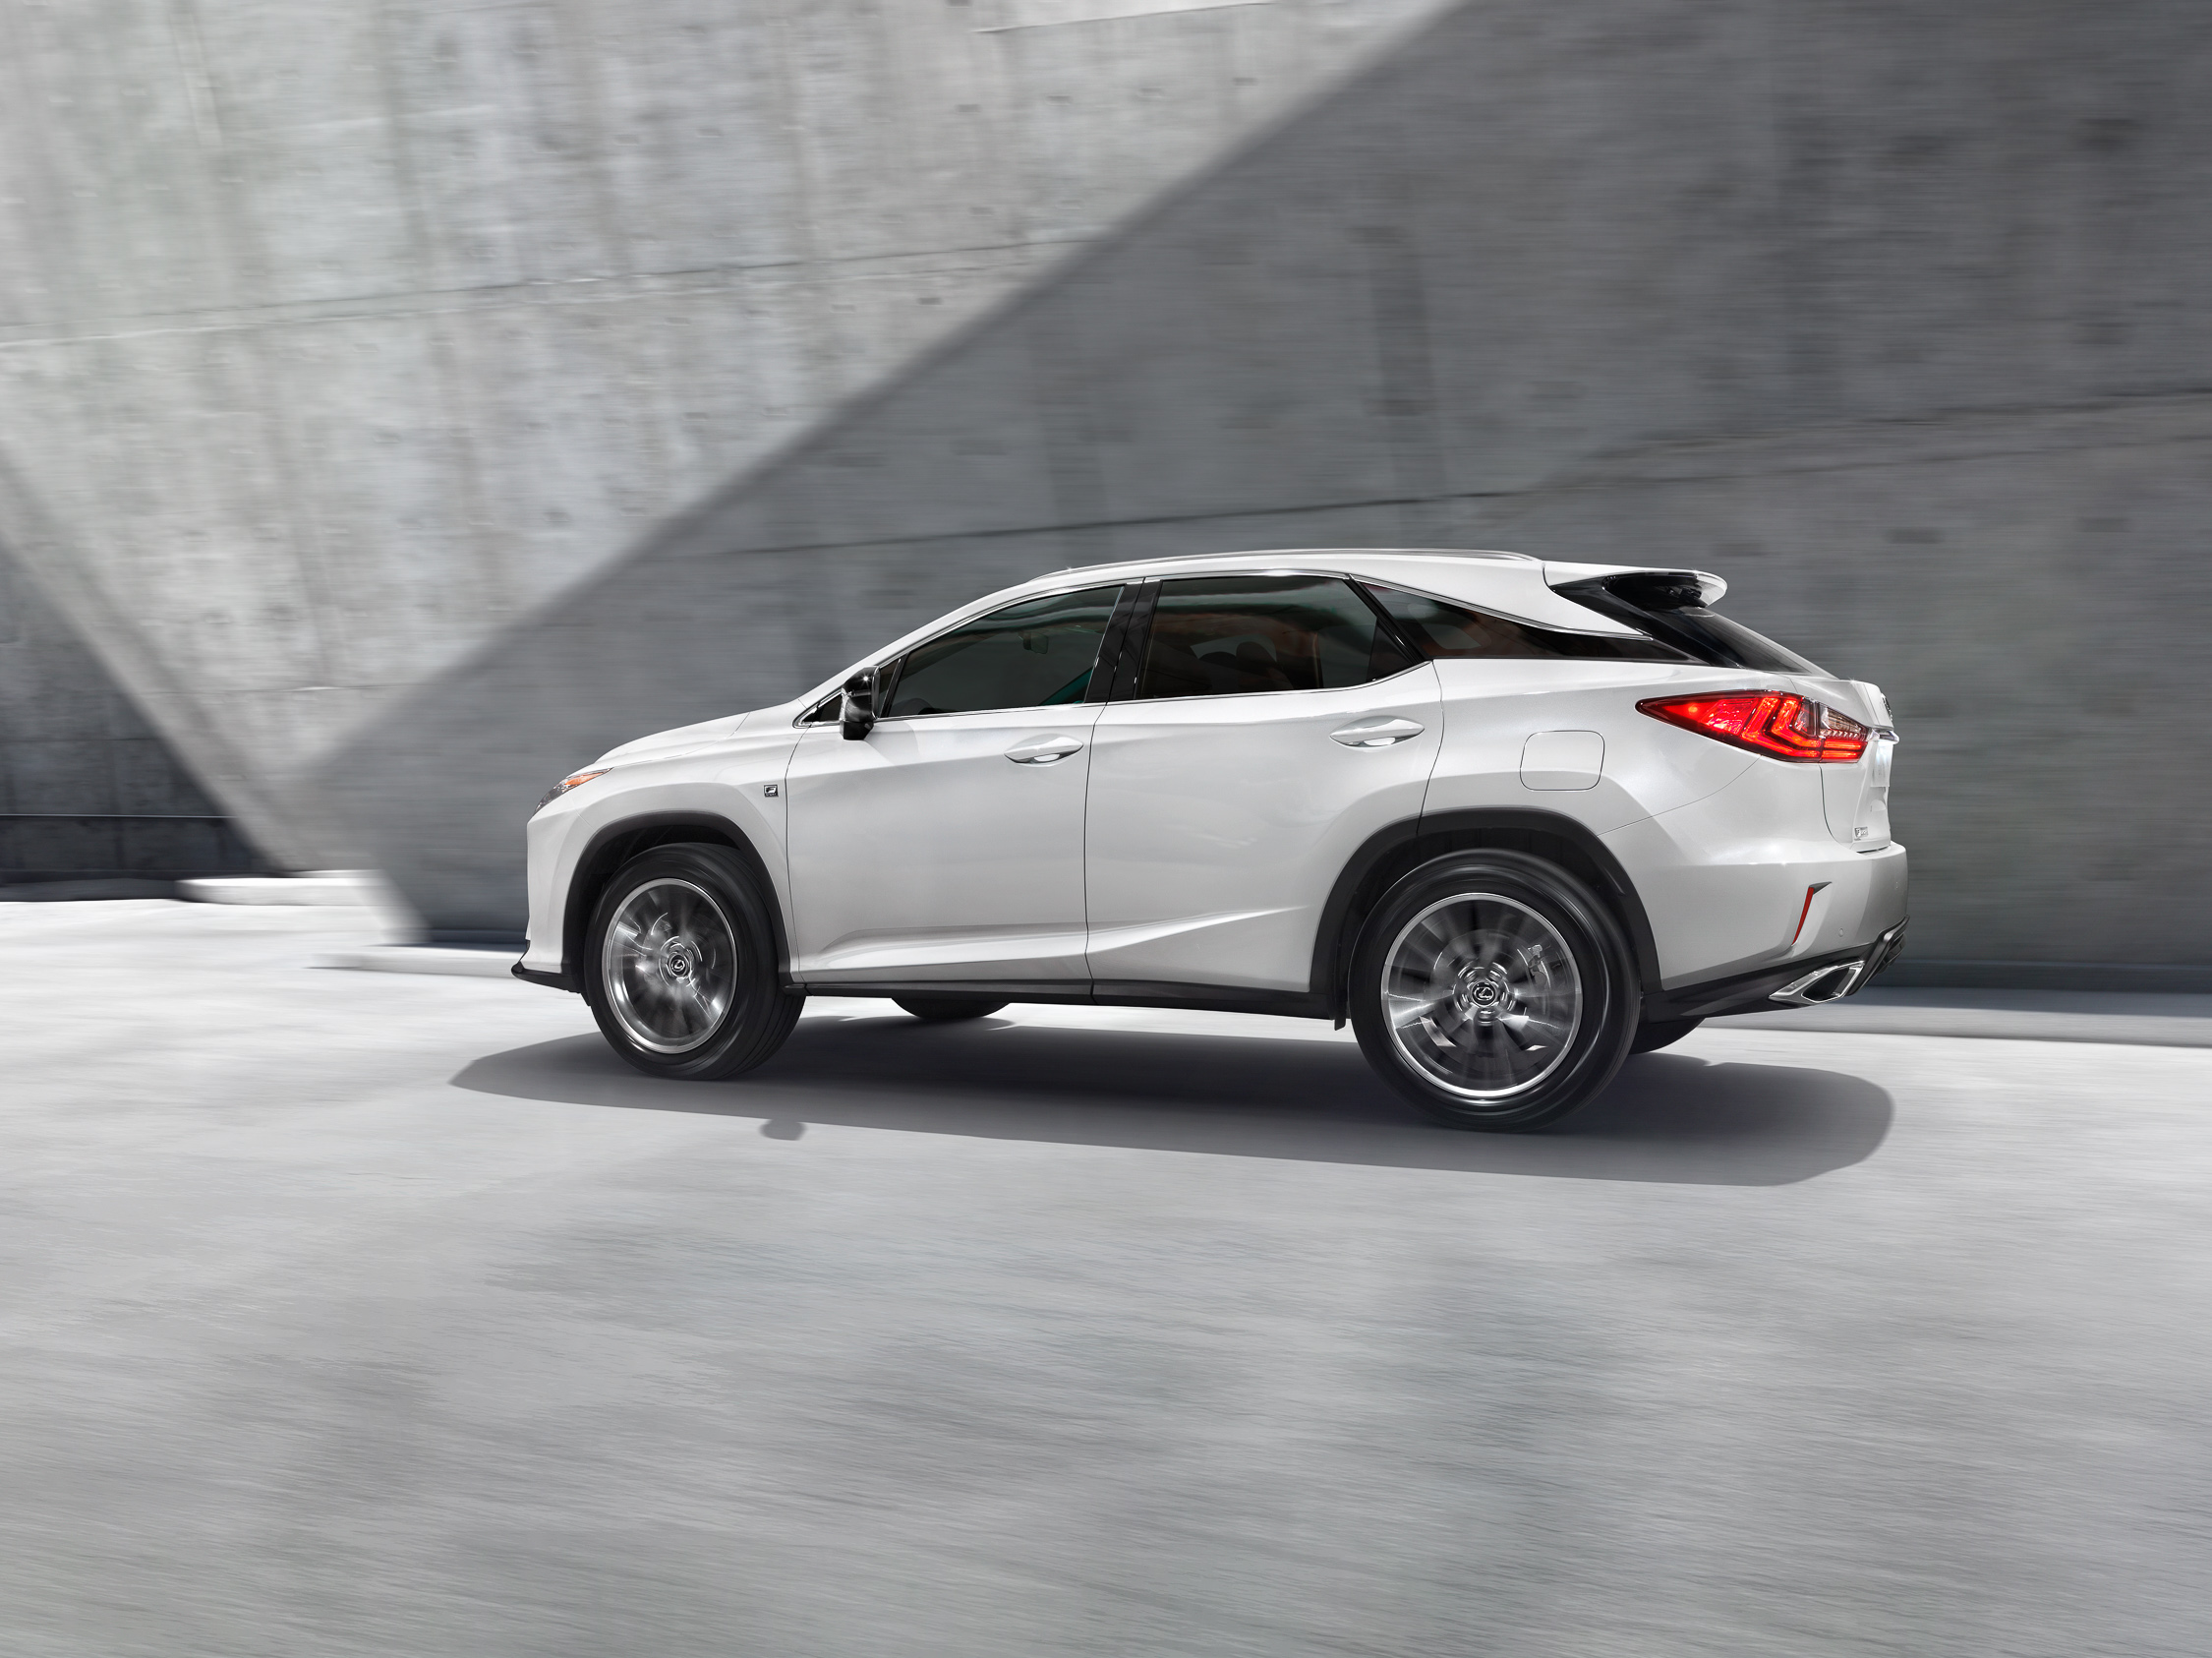 migs-foto-cgi-photographer-automotive-car-hong-kong-michael-lee-advtertising-commercial-photography-Lexus_RX_PolyU_White_Motion-Stacked_FINAL